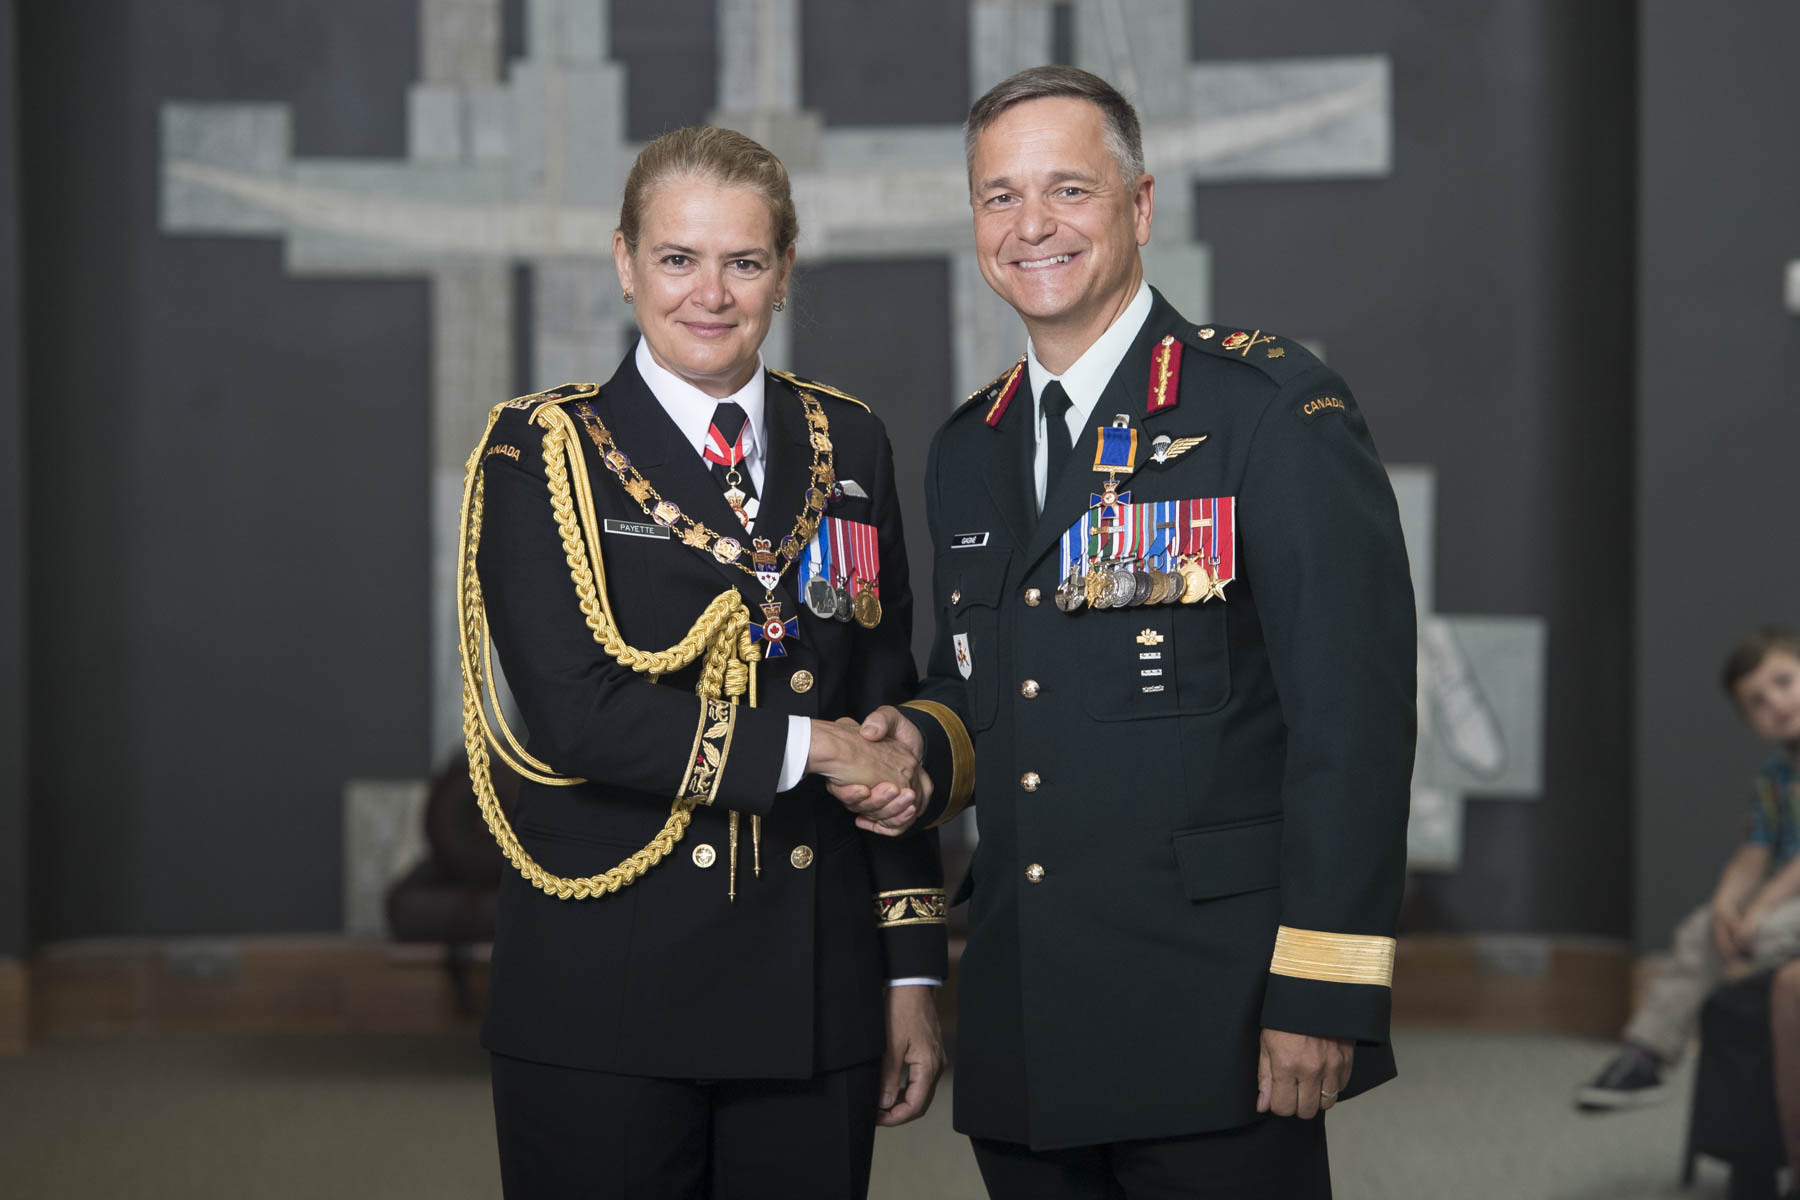 The Governor General bestowed the honour of Member of the Order of Military Merit upon Brigadier-General Joseph Marc Gagné, O.M.M., M.S.M., C.D.